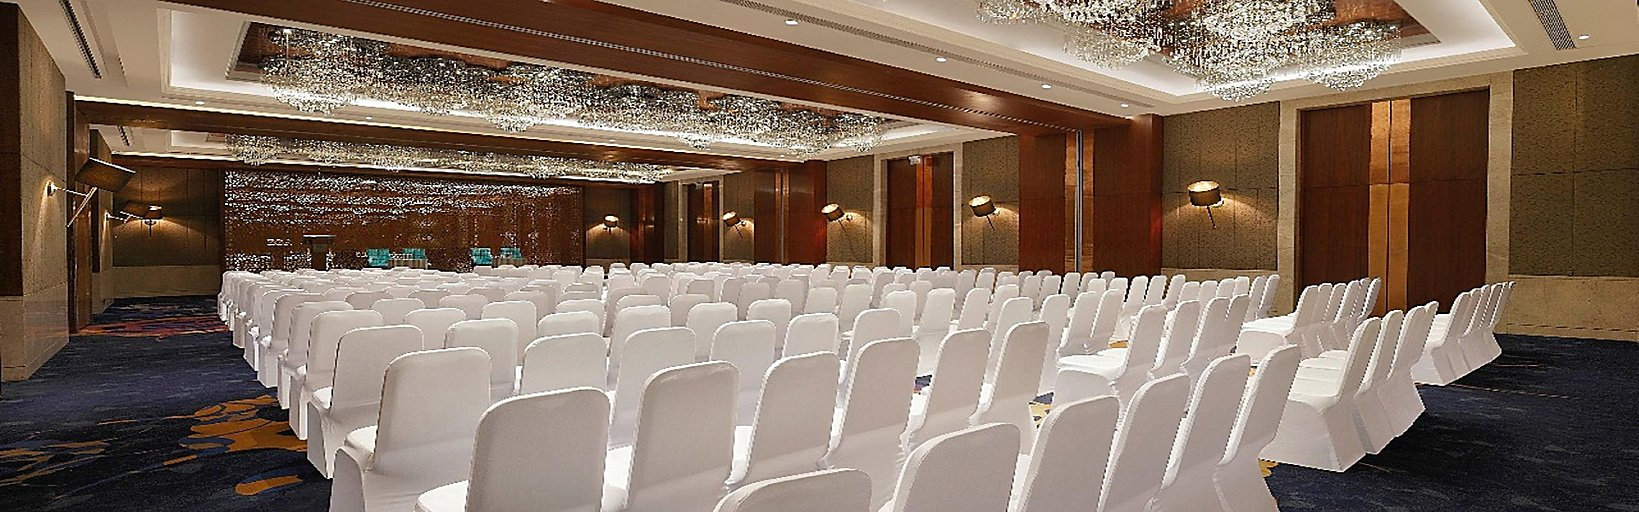 Holiday Inn Jaipur City Centre - Hotel Groups & Meeting Rooms Available